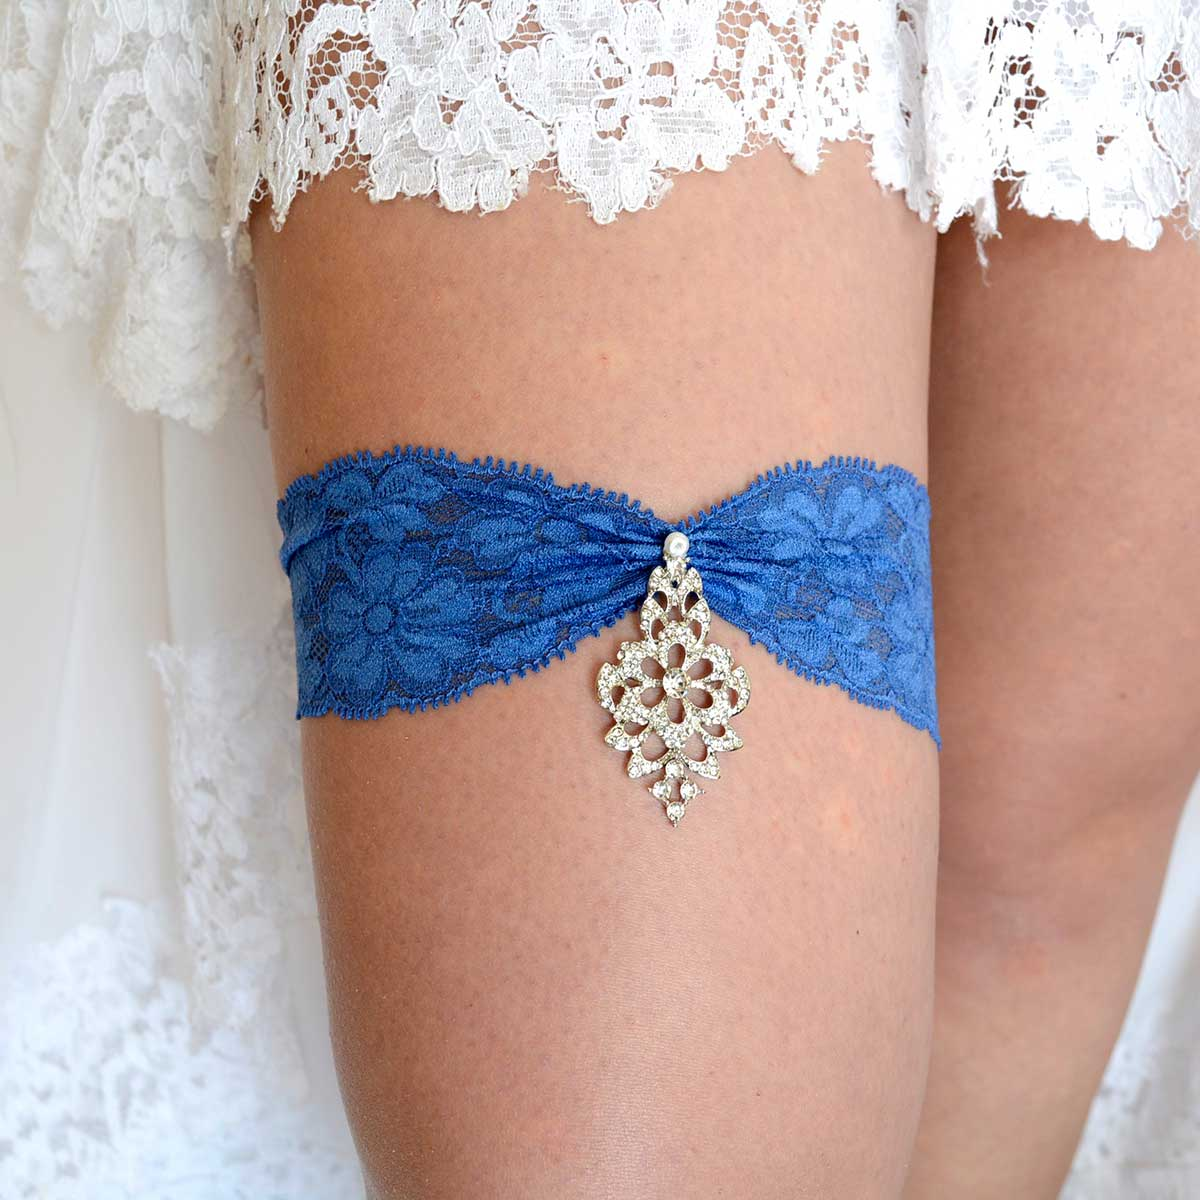 Navy Blue Wedding Garter Belt With Clear Rhinestone - Wedding Garter - SuzannaM Designs